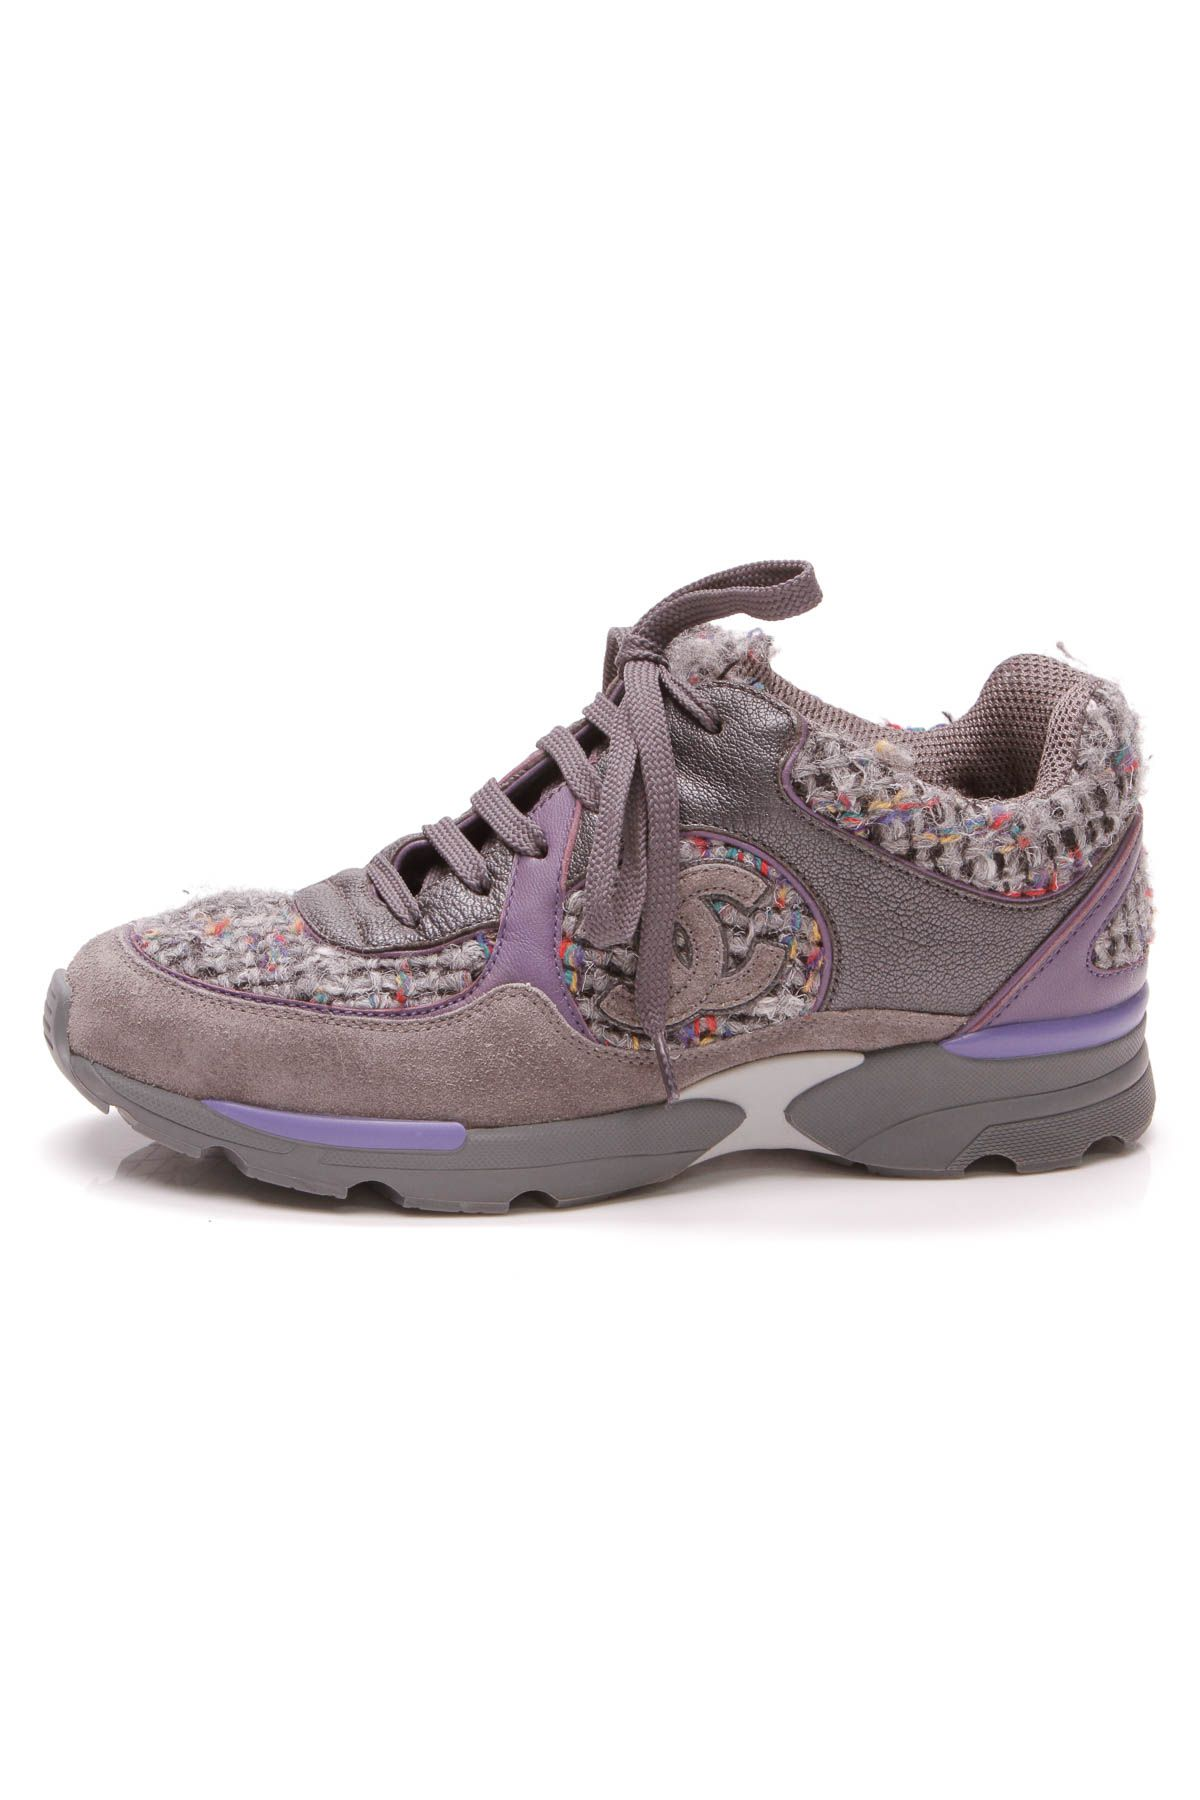 Tweed CC Sneakers - Gray Size 36